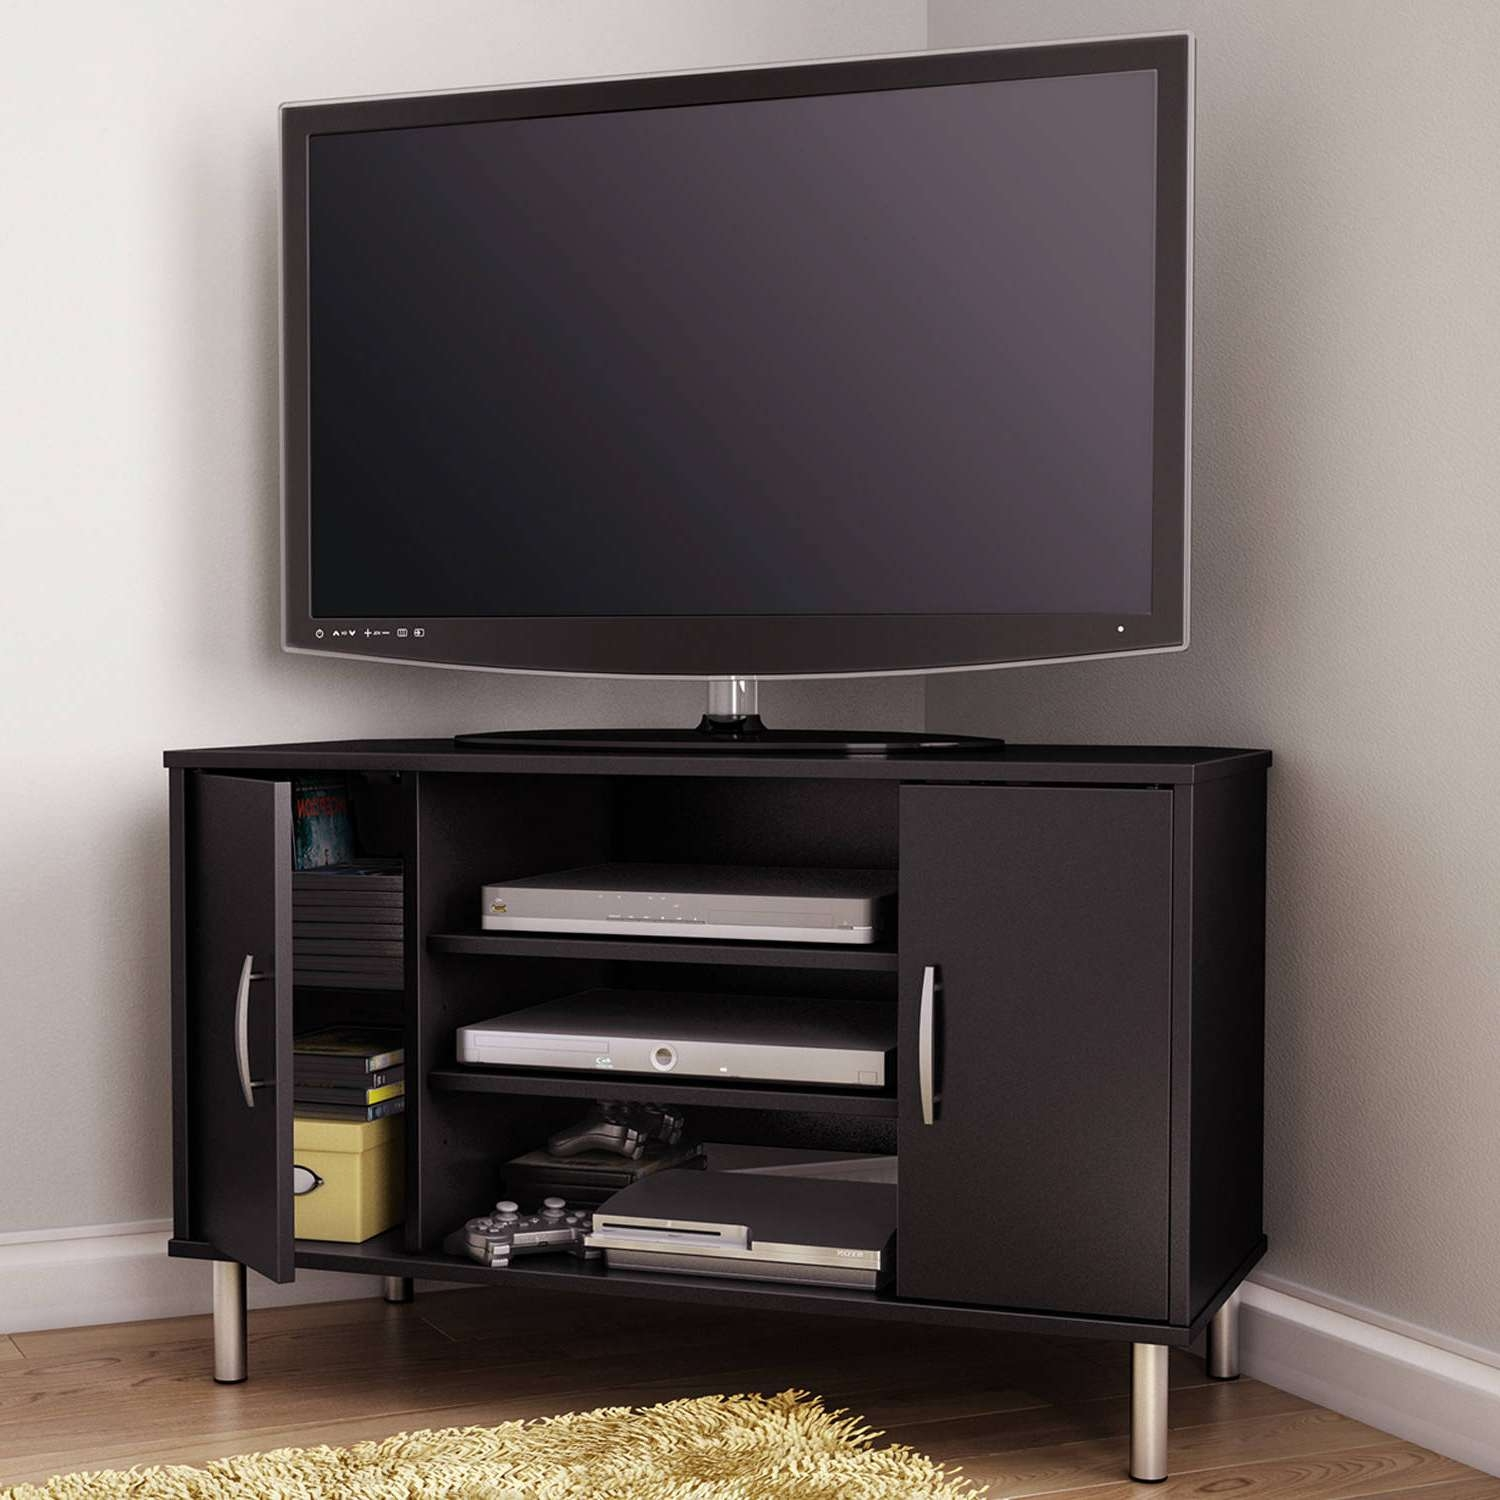 Corner Tv Stand Ikea – Corner Tv Stand Design With Various Cabinet Intended For Black Corner Tv Cabinets (View 8 of 20)